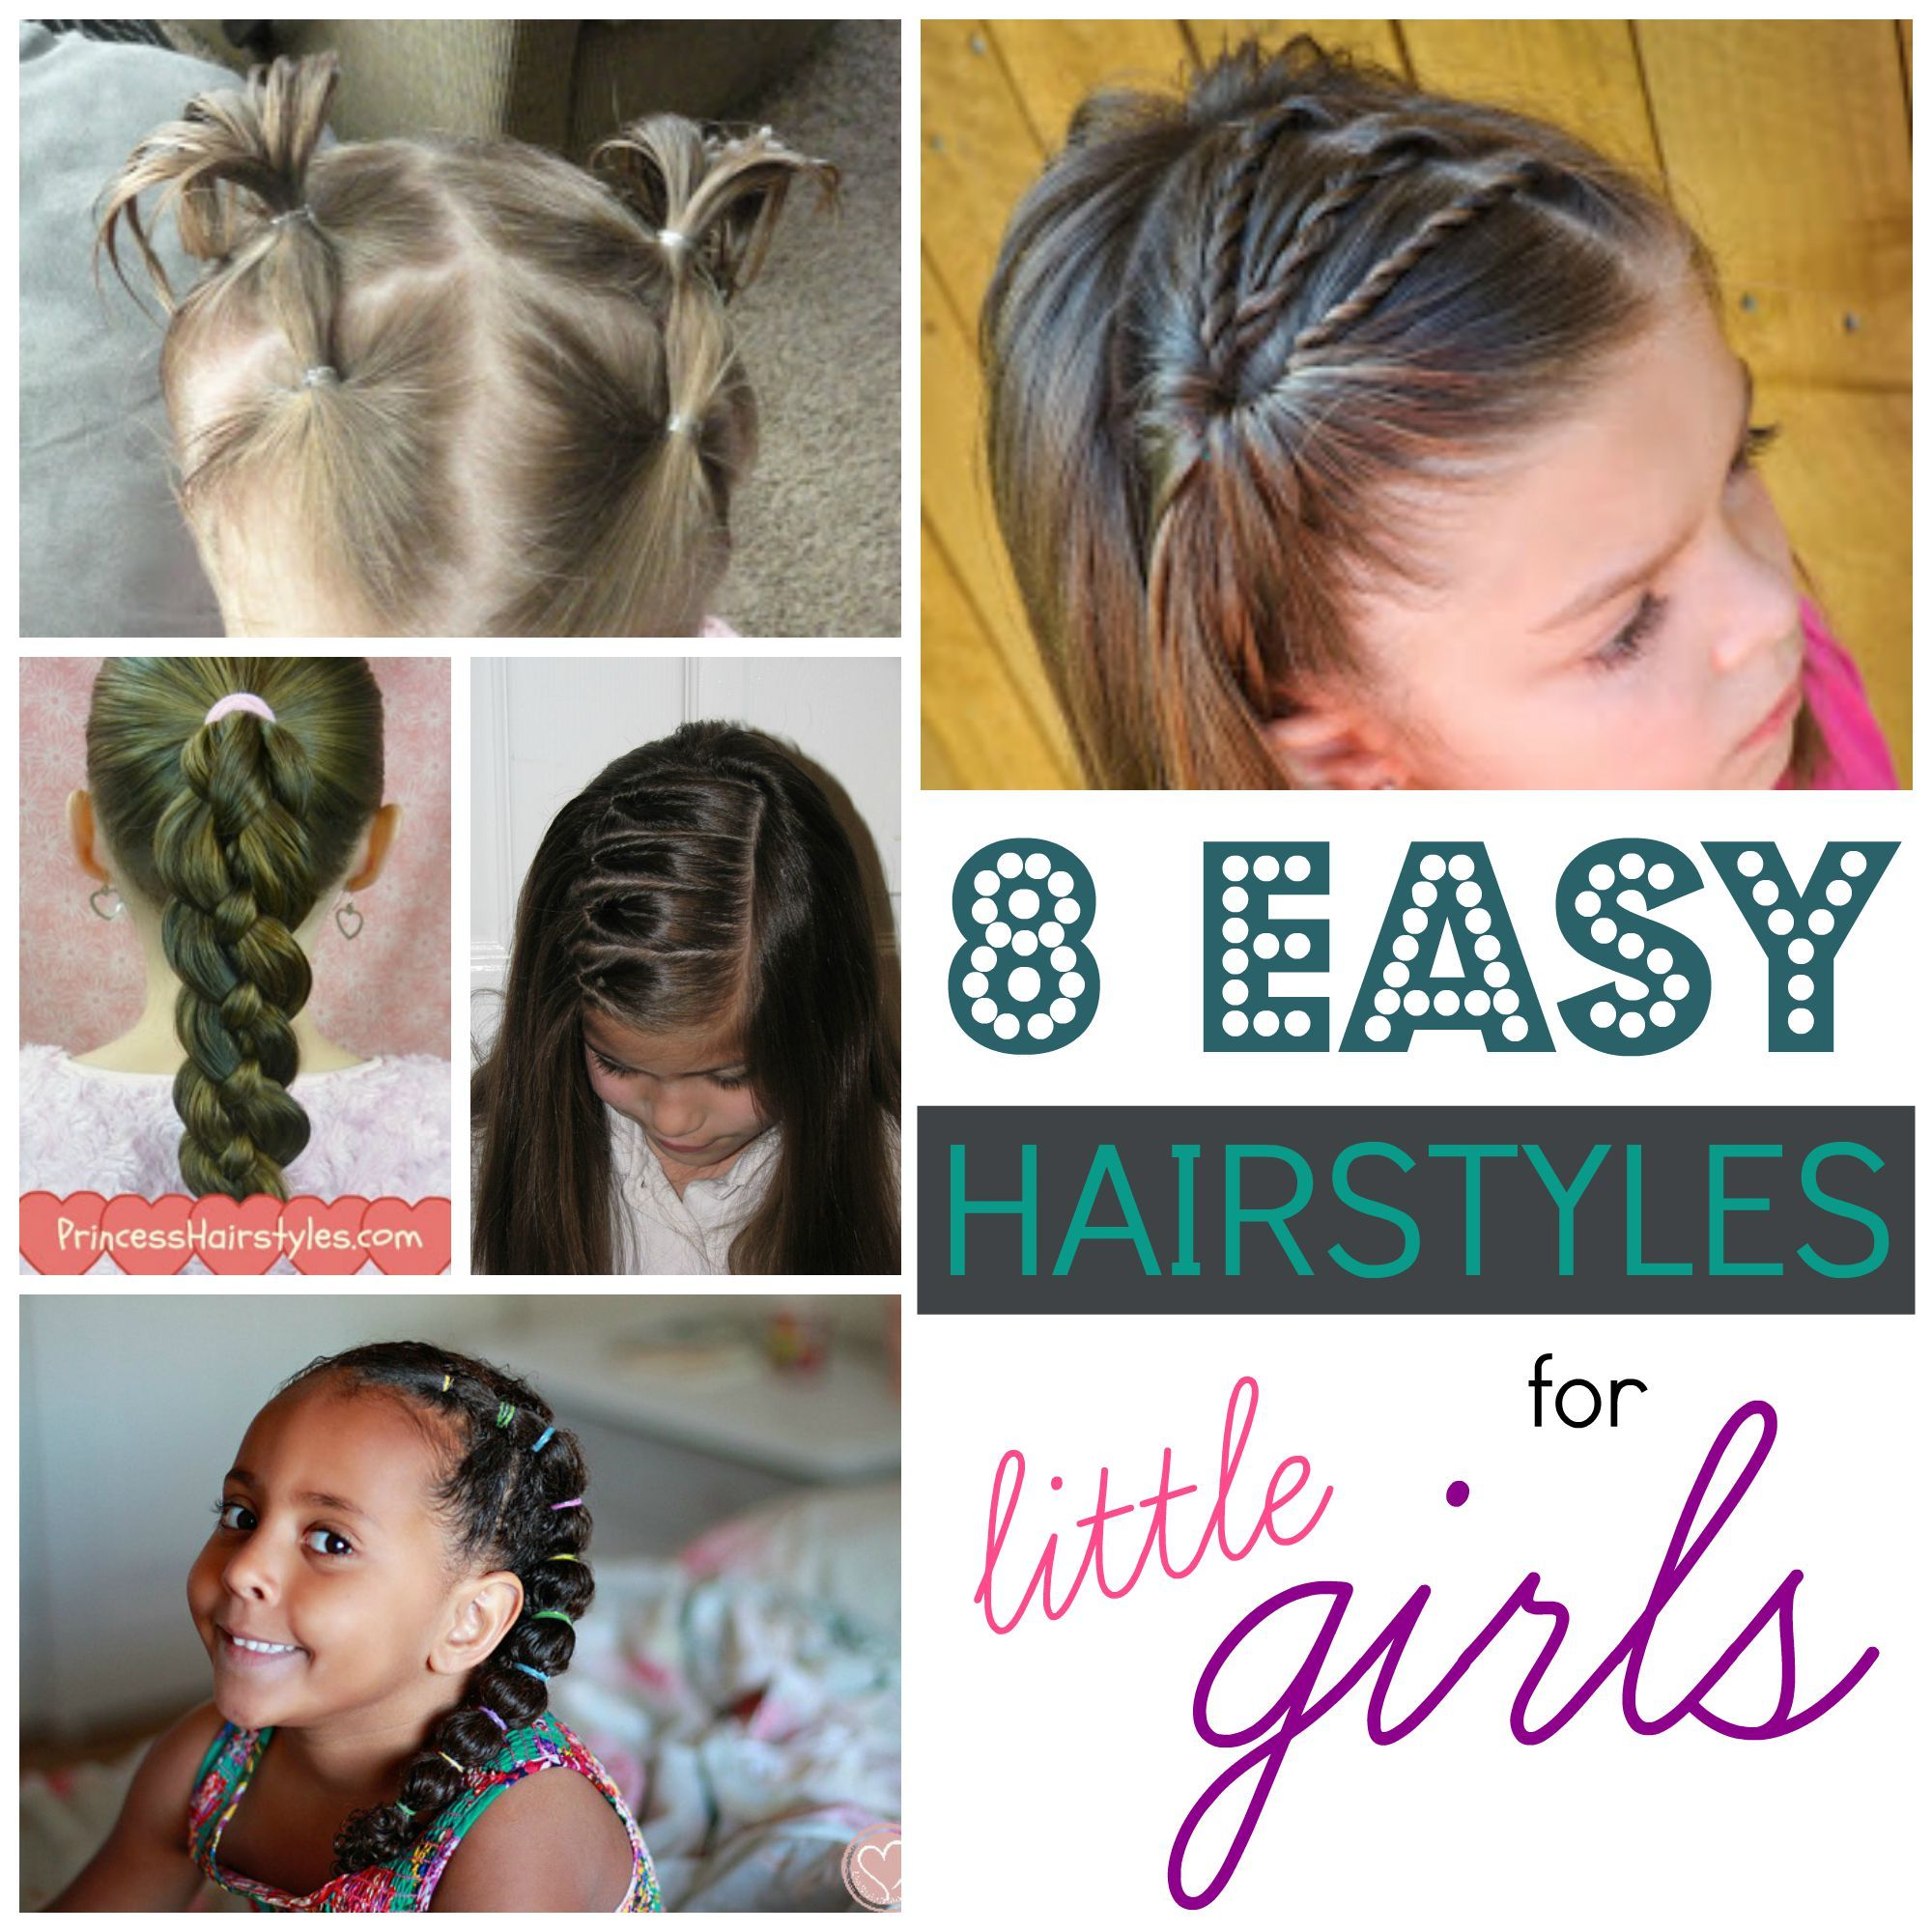 Find a cute new hairstyle for your little girl 8 Easy Hairstyles